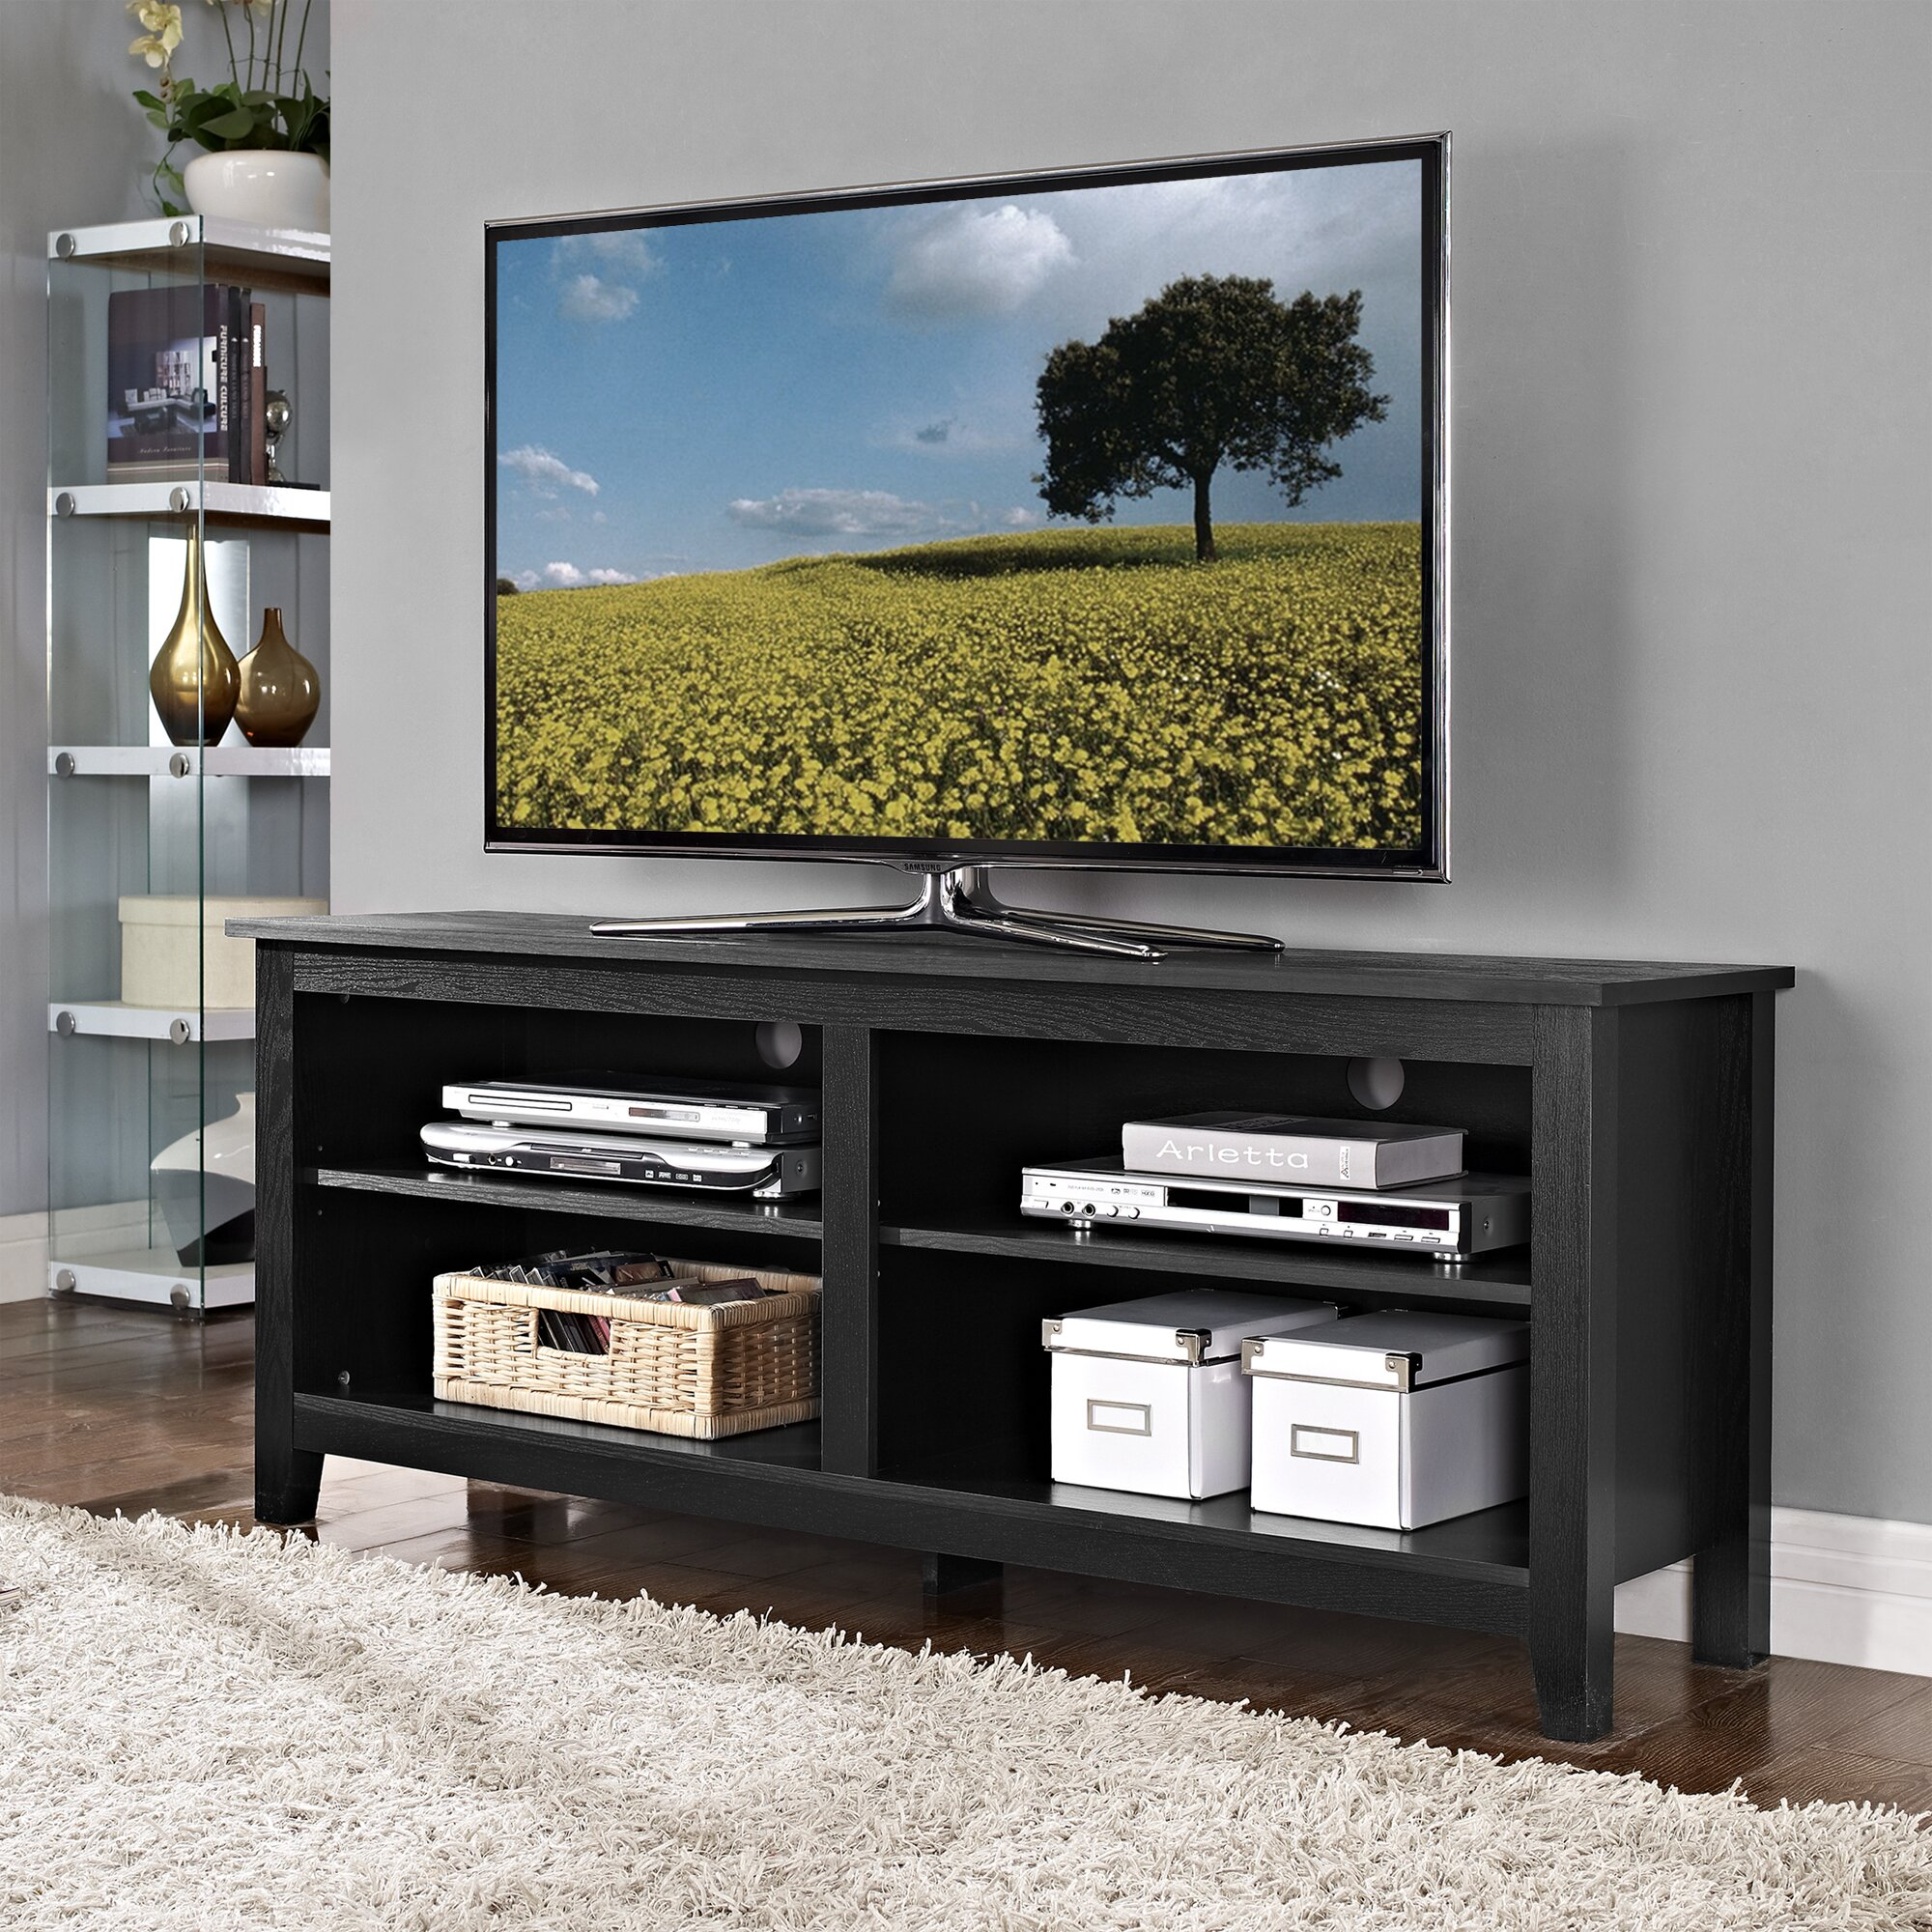 Tv Stand Designs Chennai : Beachcrest home sunbury tv stand reviews wayfair